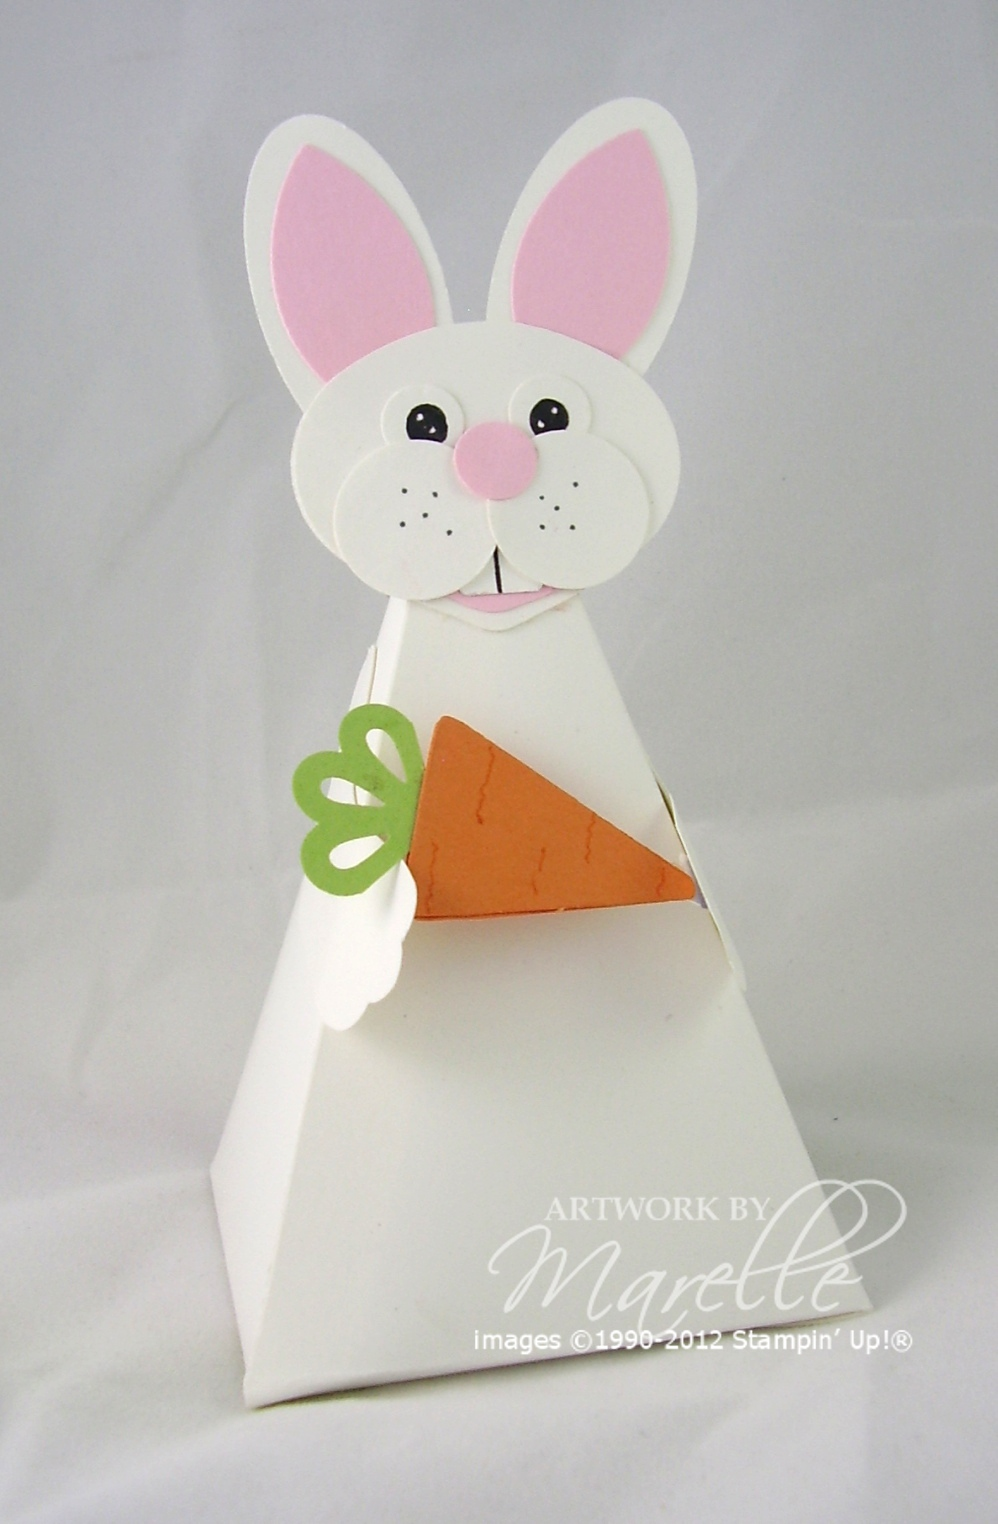 Marelle taylor stampin up demonstrator sydney australia easter you might remember my christmas petal cone gifts well here is an easter bunny version that well be making in my class next week negle Images